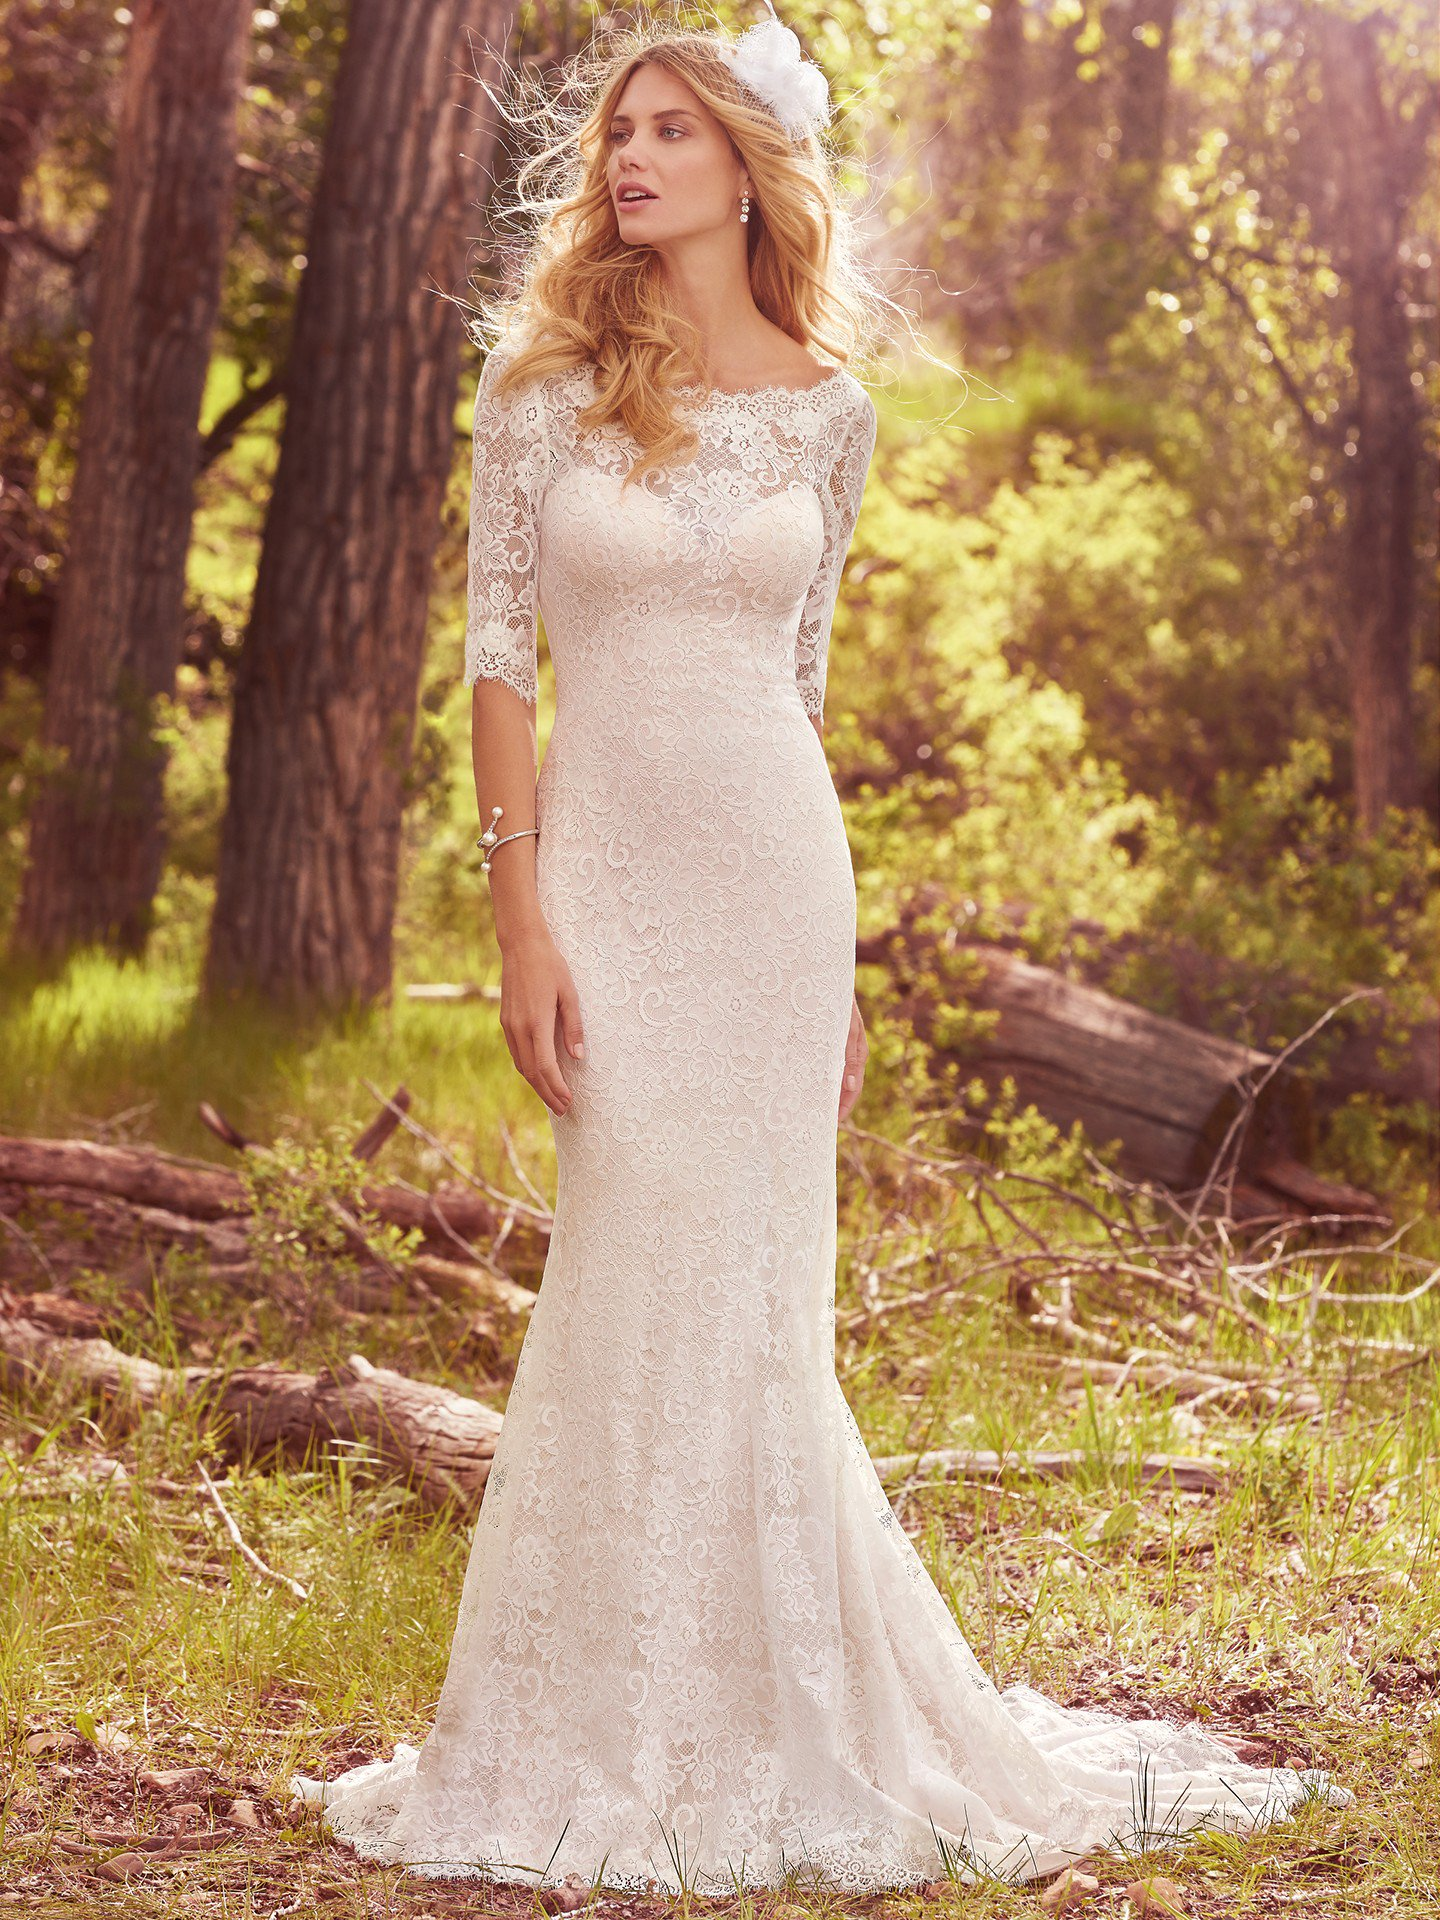 Maggie-Sottero-Wedding-Dress-Mckenzie-7MW346-Alt1 - Miss BushMiss Bush